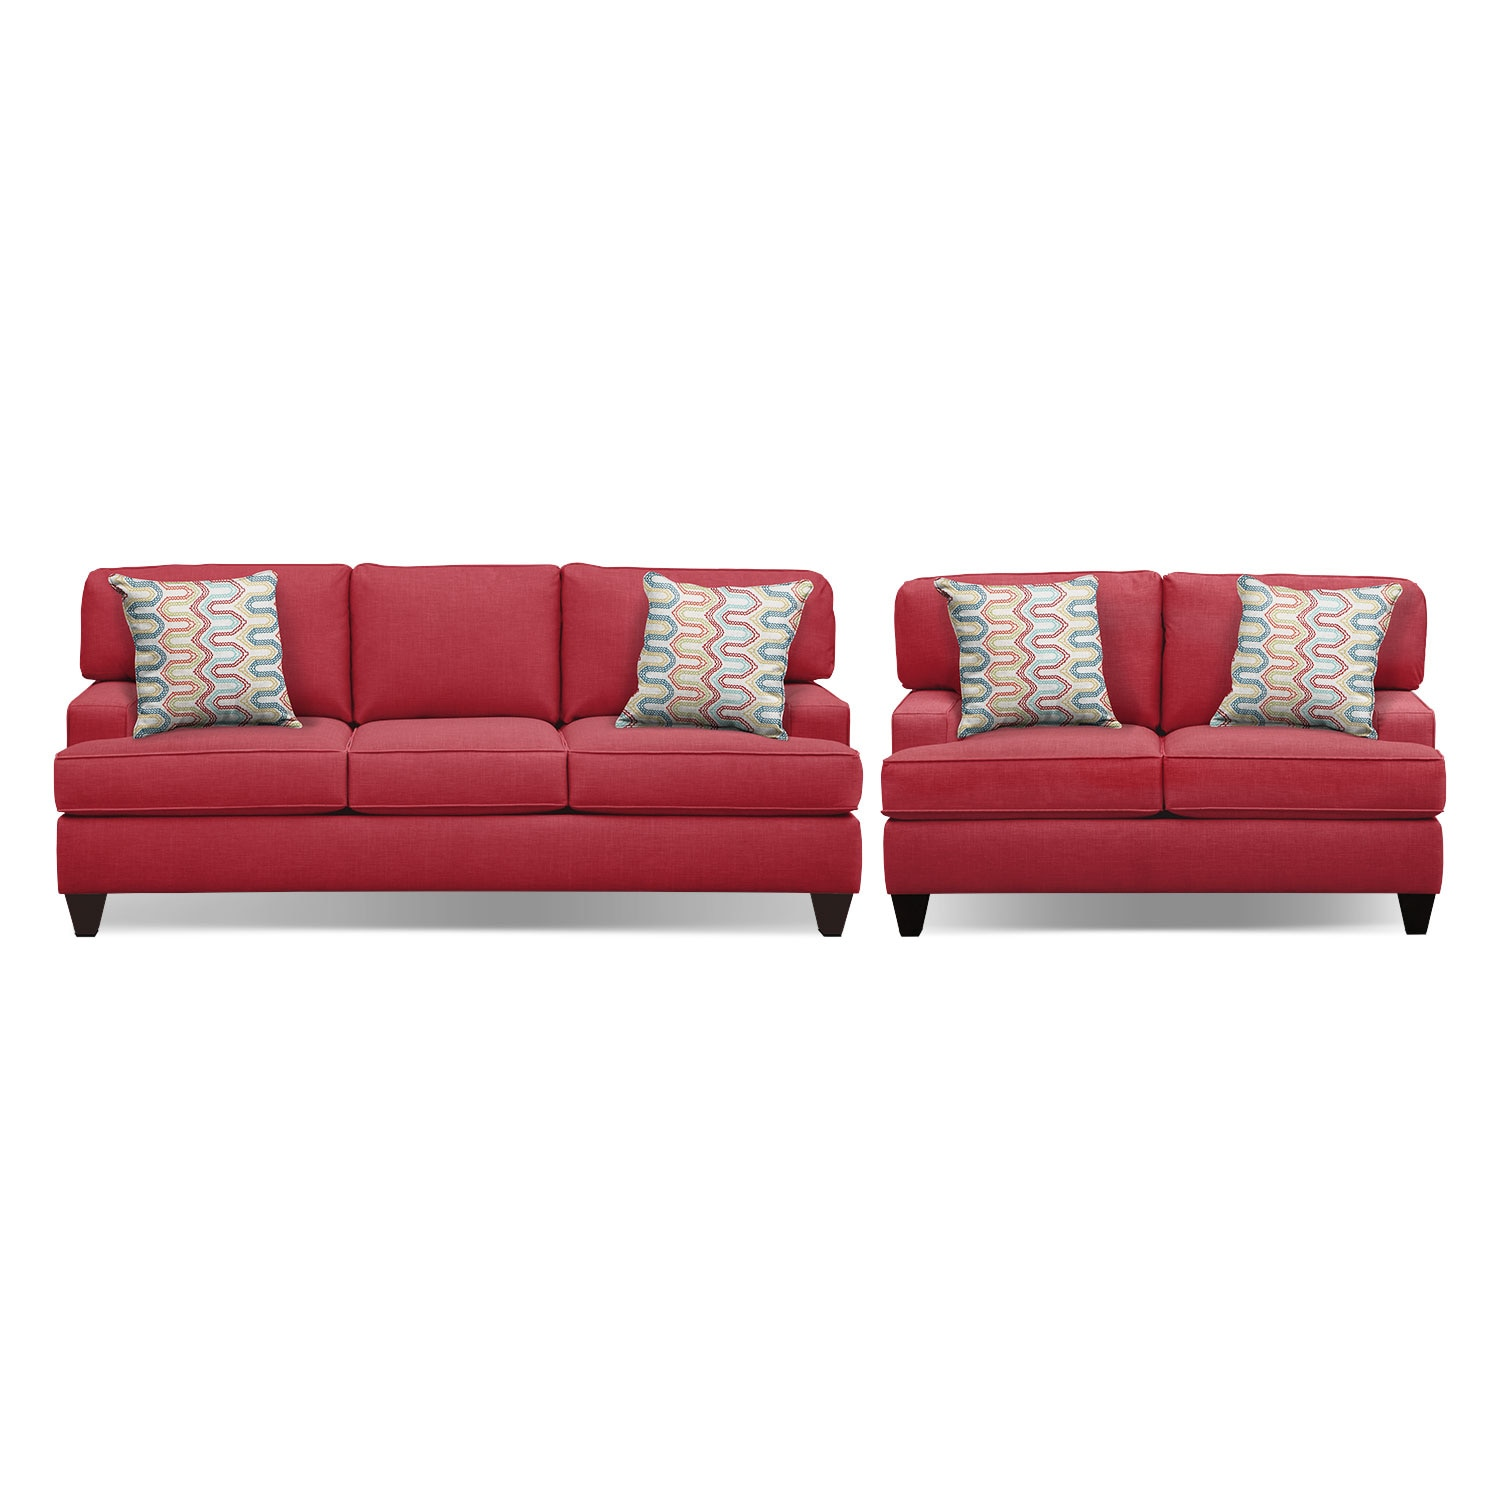 "Living Room Furniture - Conner Red 87"" Innerspring Sleeper Sofa and 63"" Sofa Set"